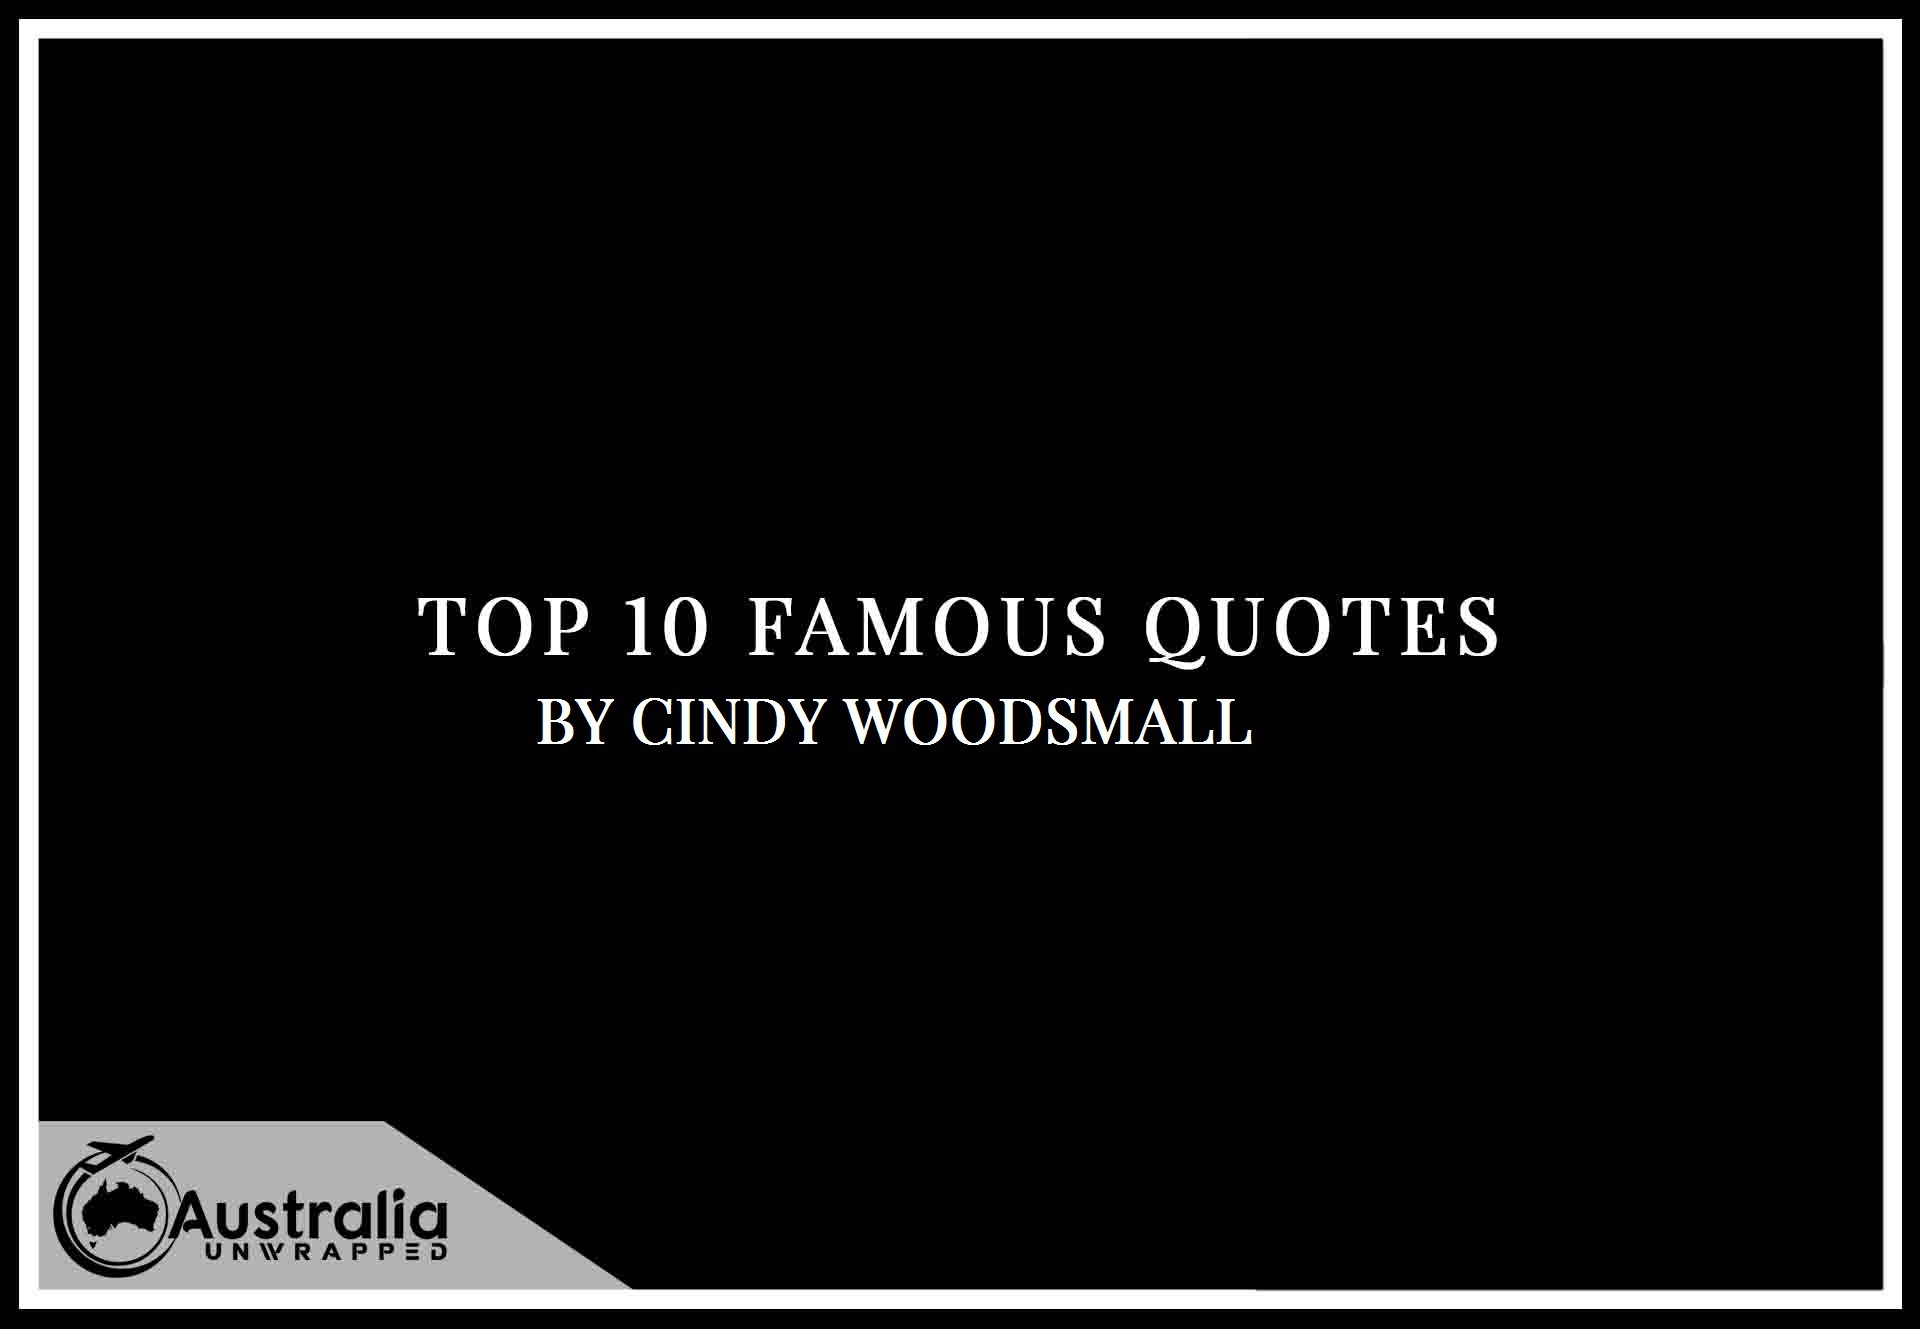 Cindy Woodsmall's Top 10 Popular and Famous Quotes